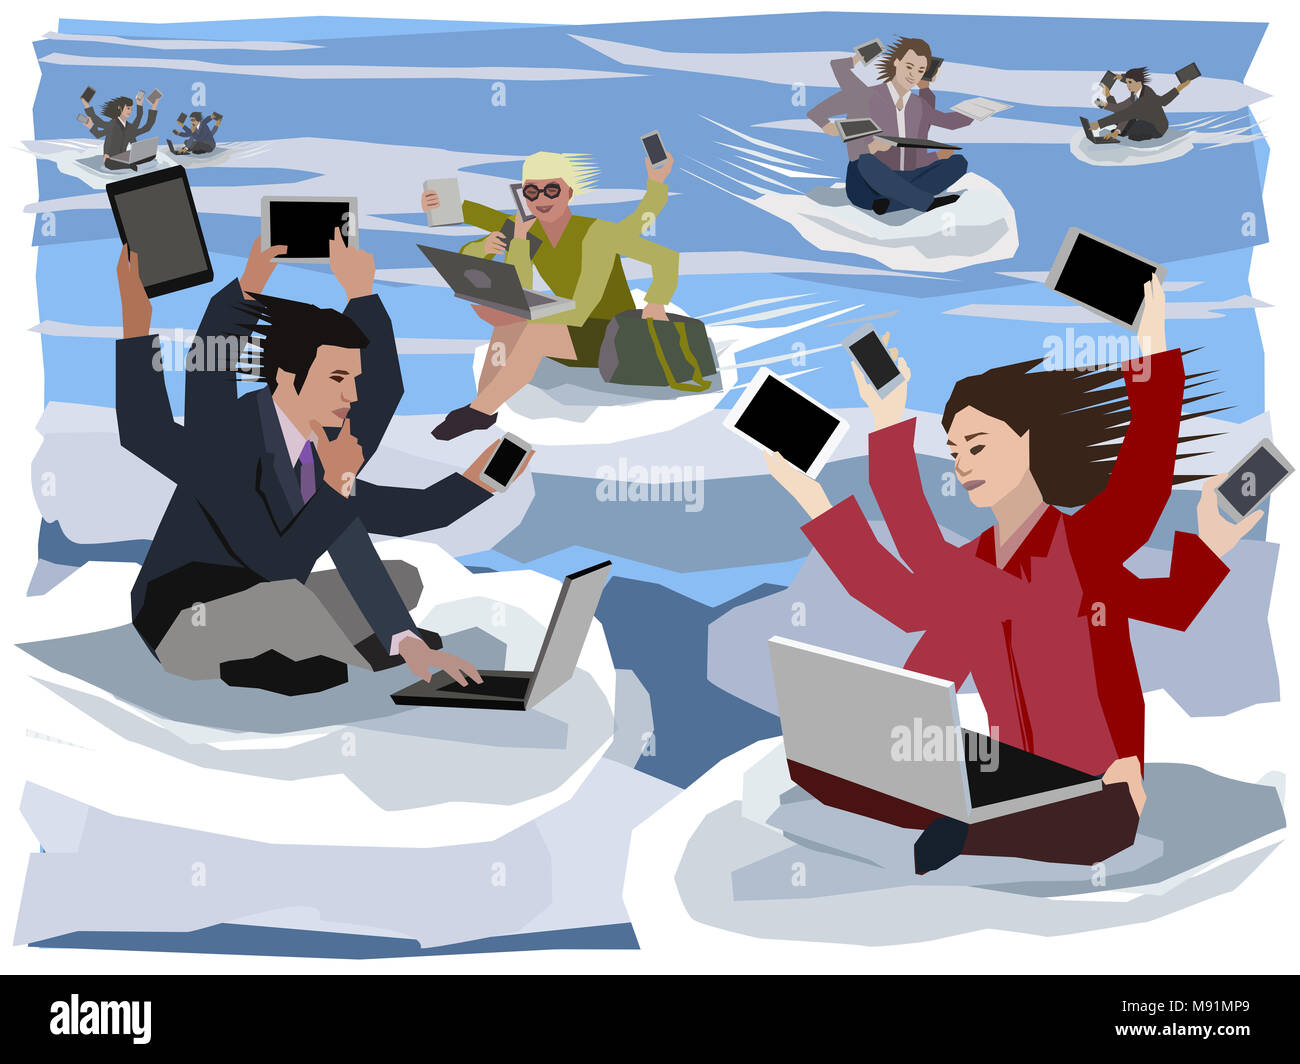 cloud-computing six-armed digital nomads flying to their next workplaces using all available mobile devices to be always connected to in the world - Stock Image